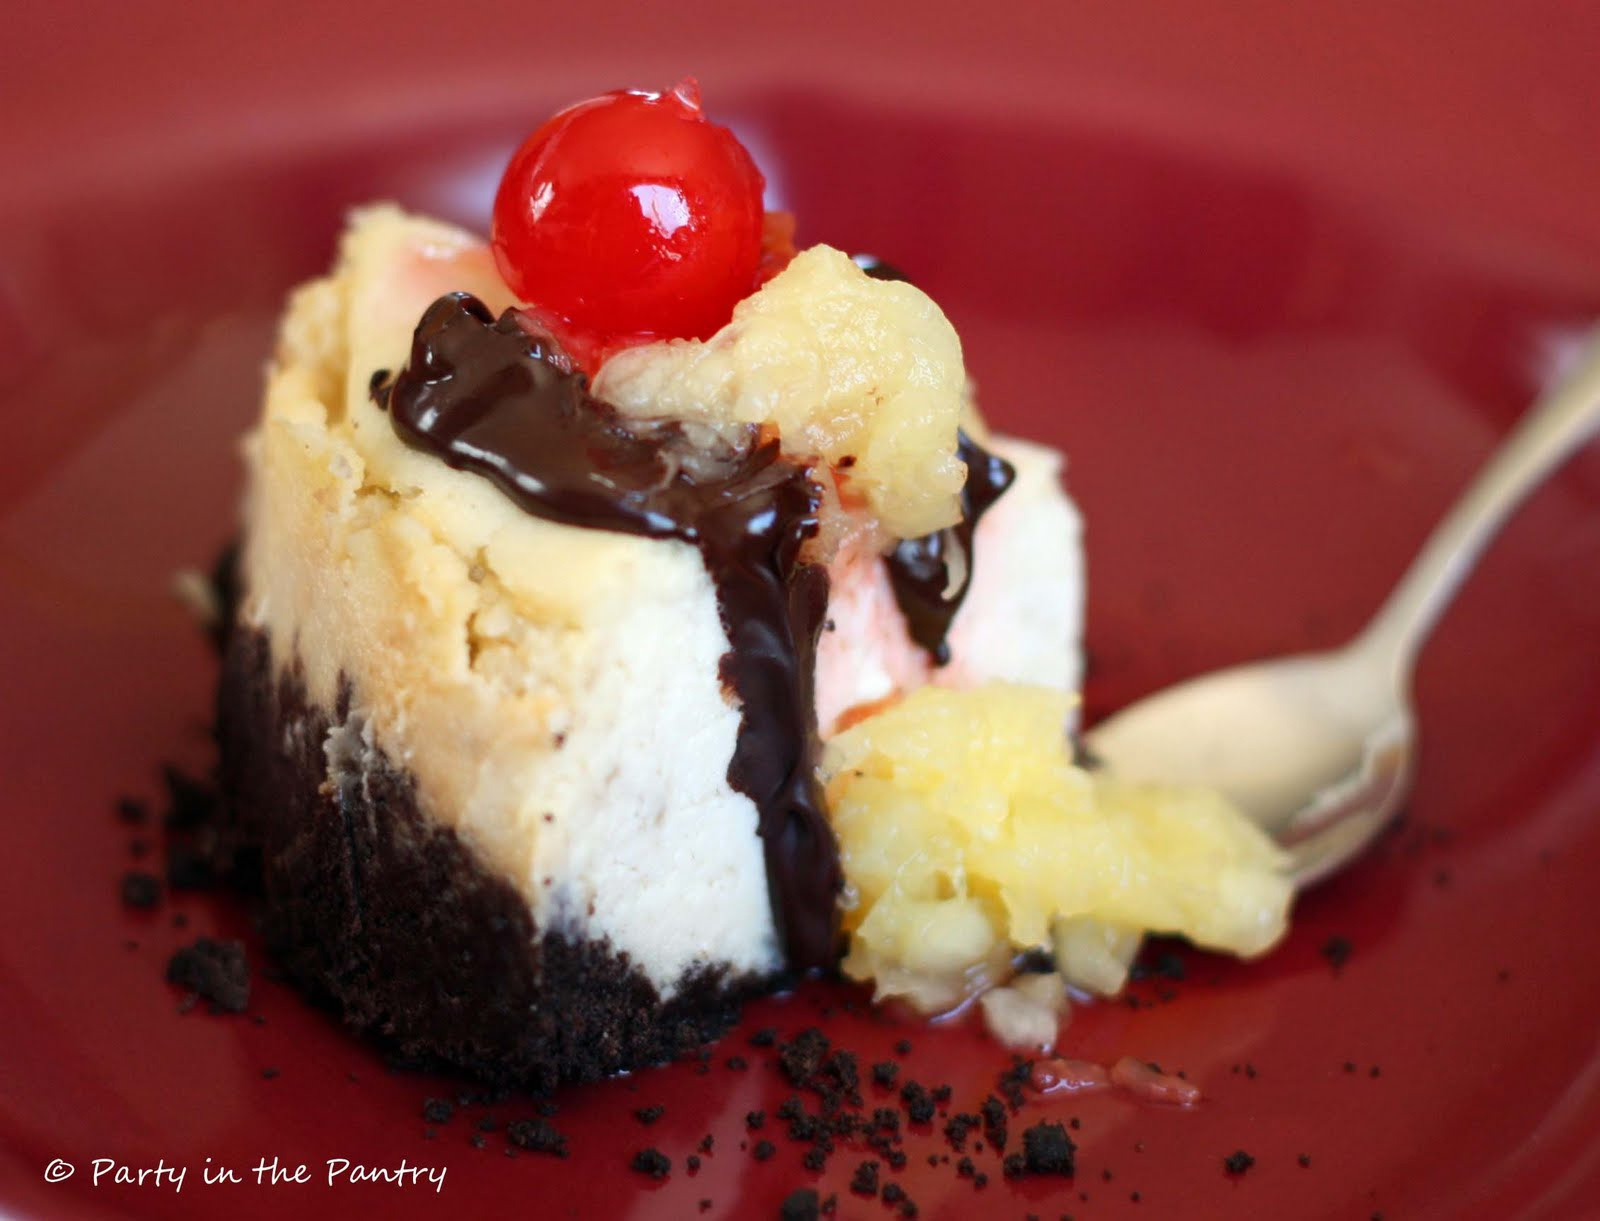 Party in the Pantry!: Banana Split Cheesecake